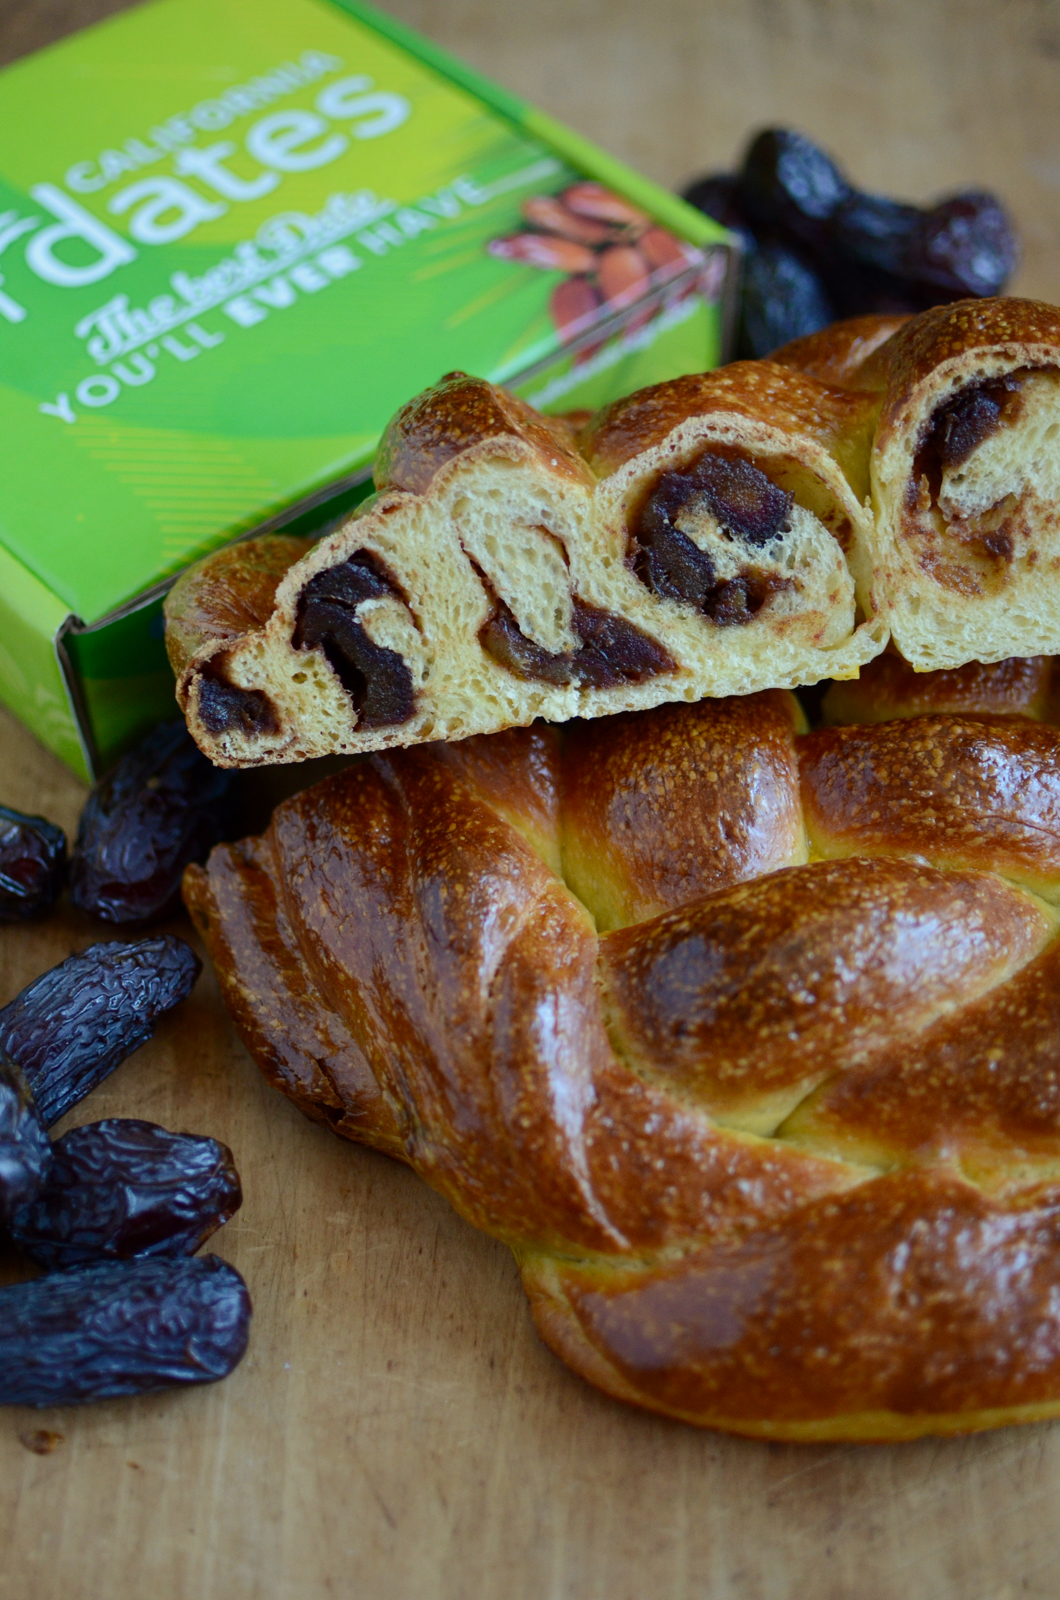 A loaf of challah, filled with apple butter and dates, sliced to show the goodness inside.